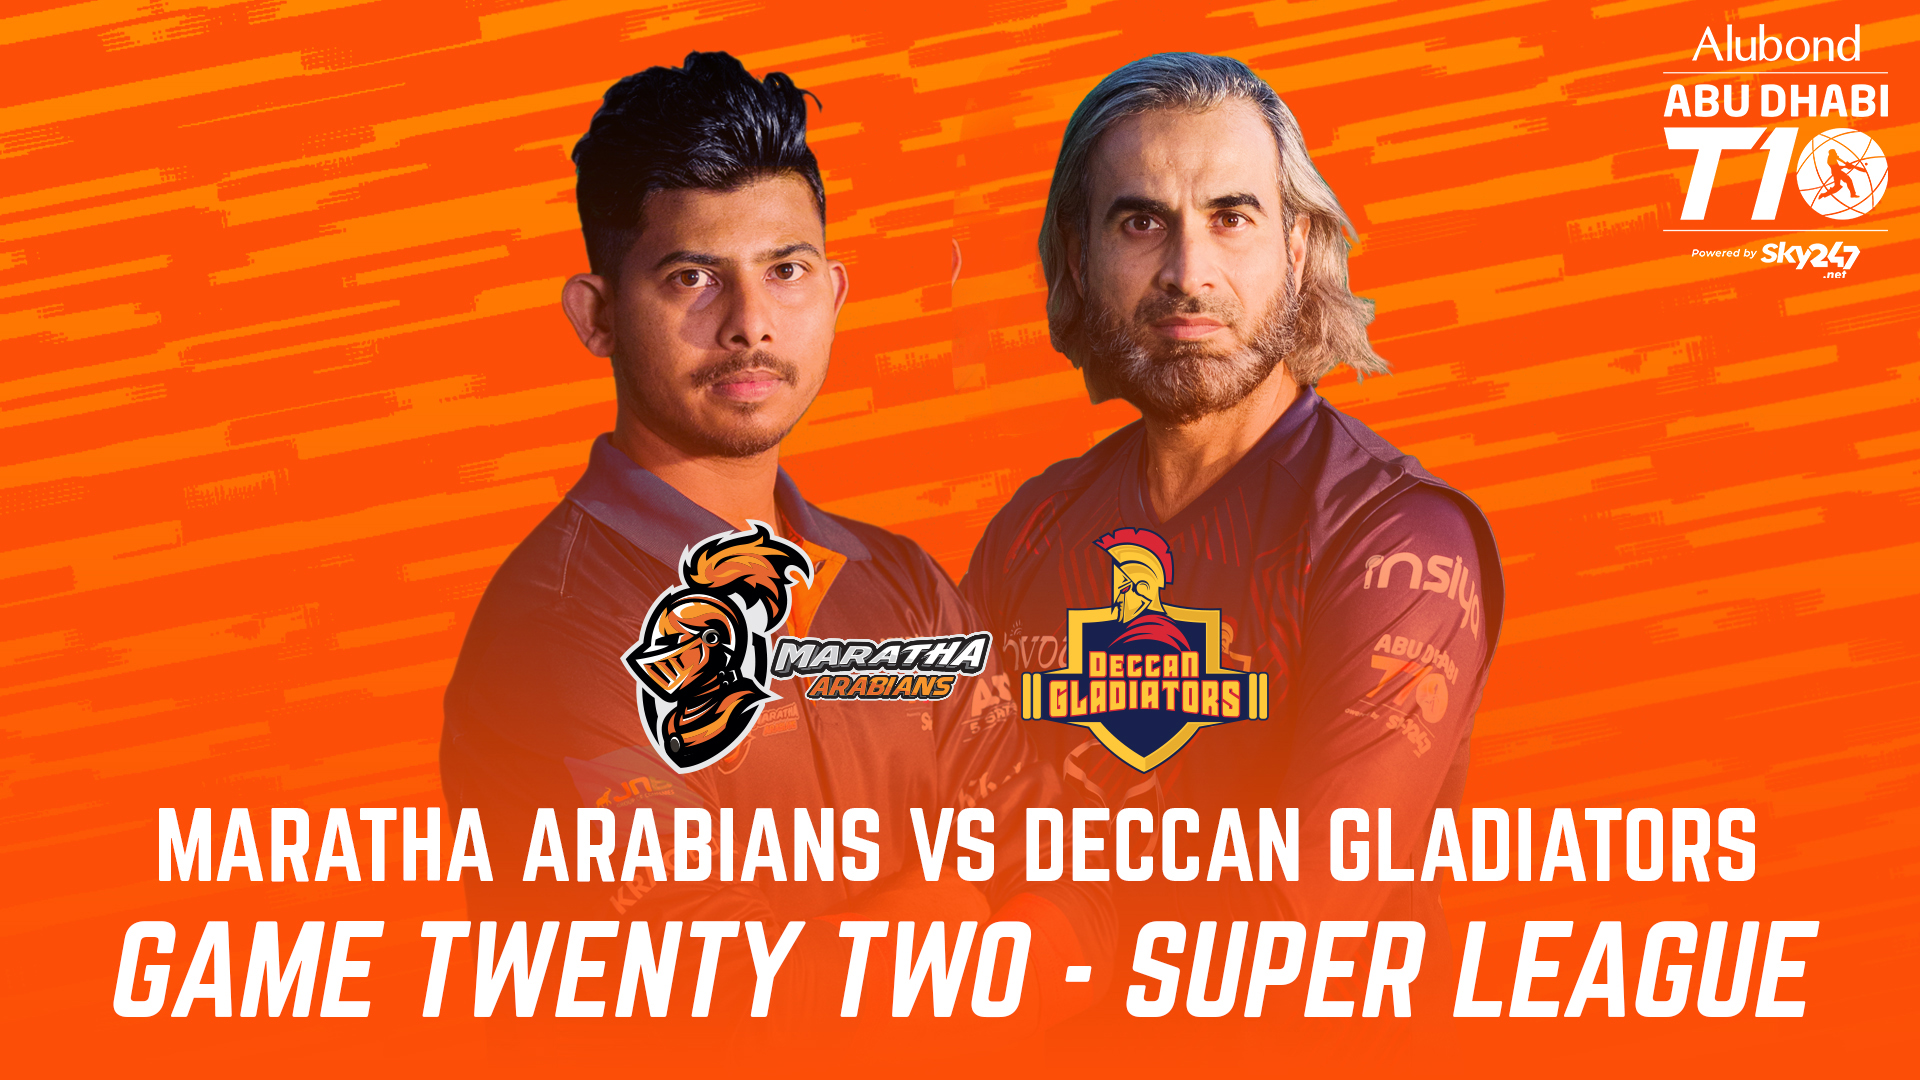 Match 22 I HIGHLIGHTS I Maratha Arabians vs Deccan Gladiators